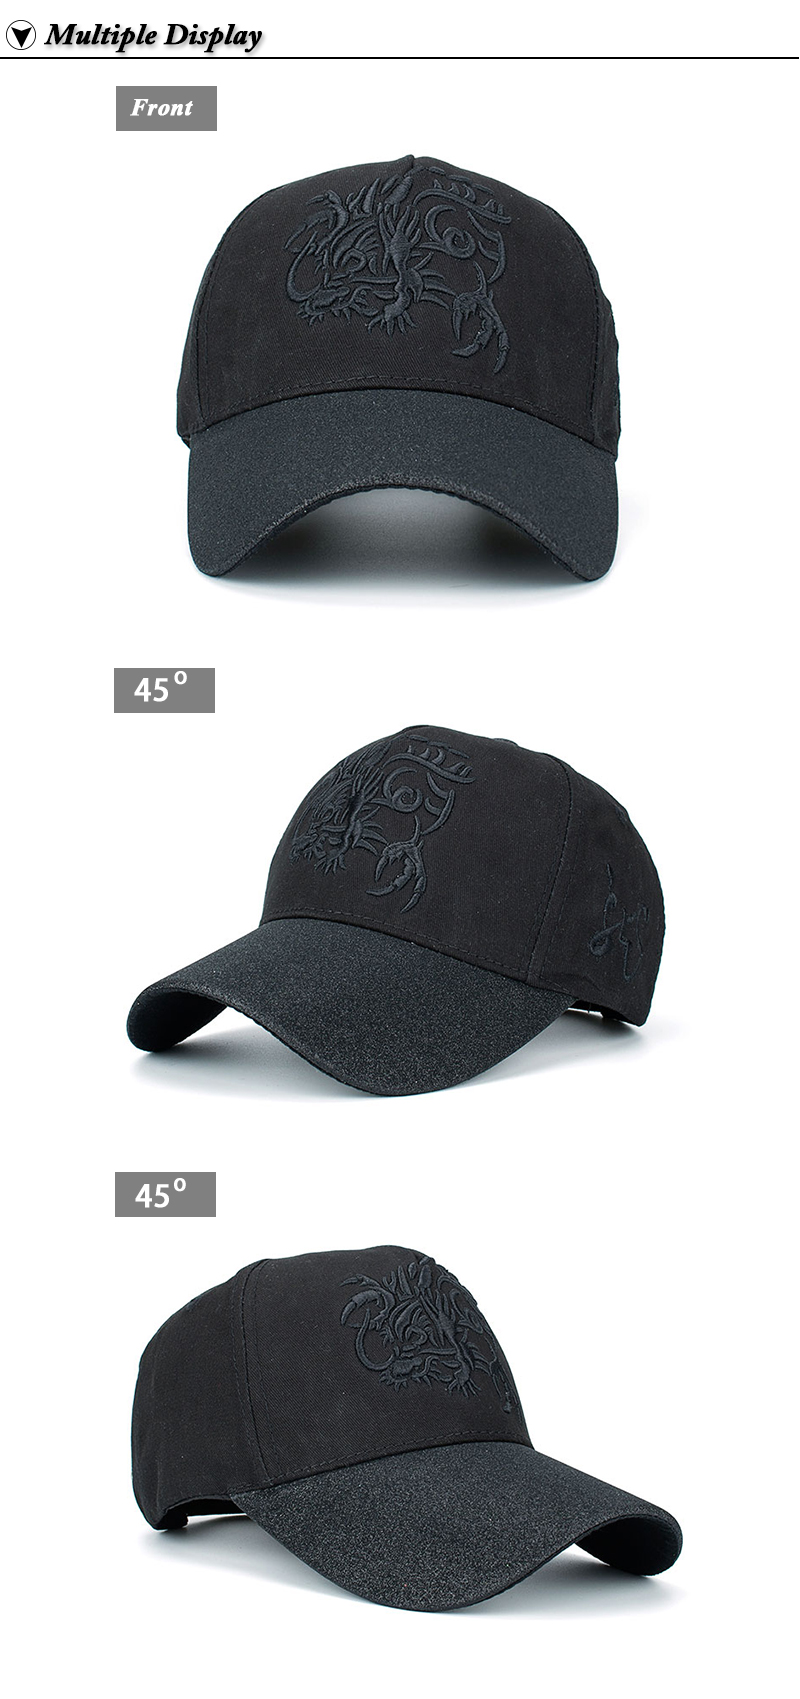 Embroidered Chinese Dragon Baseball Cap - Front and Left and Right Angle Views